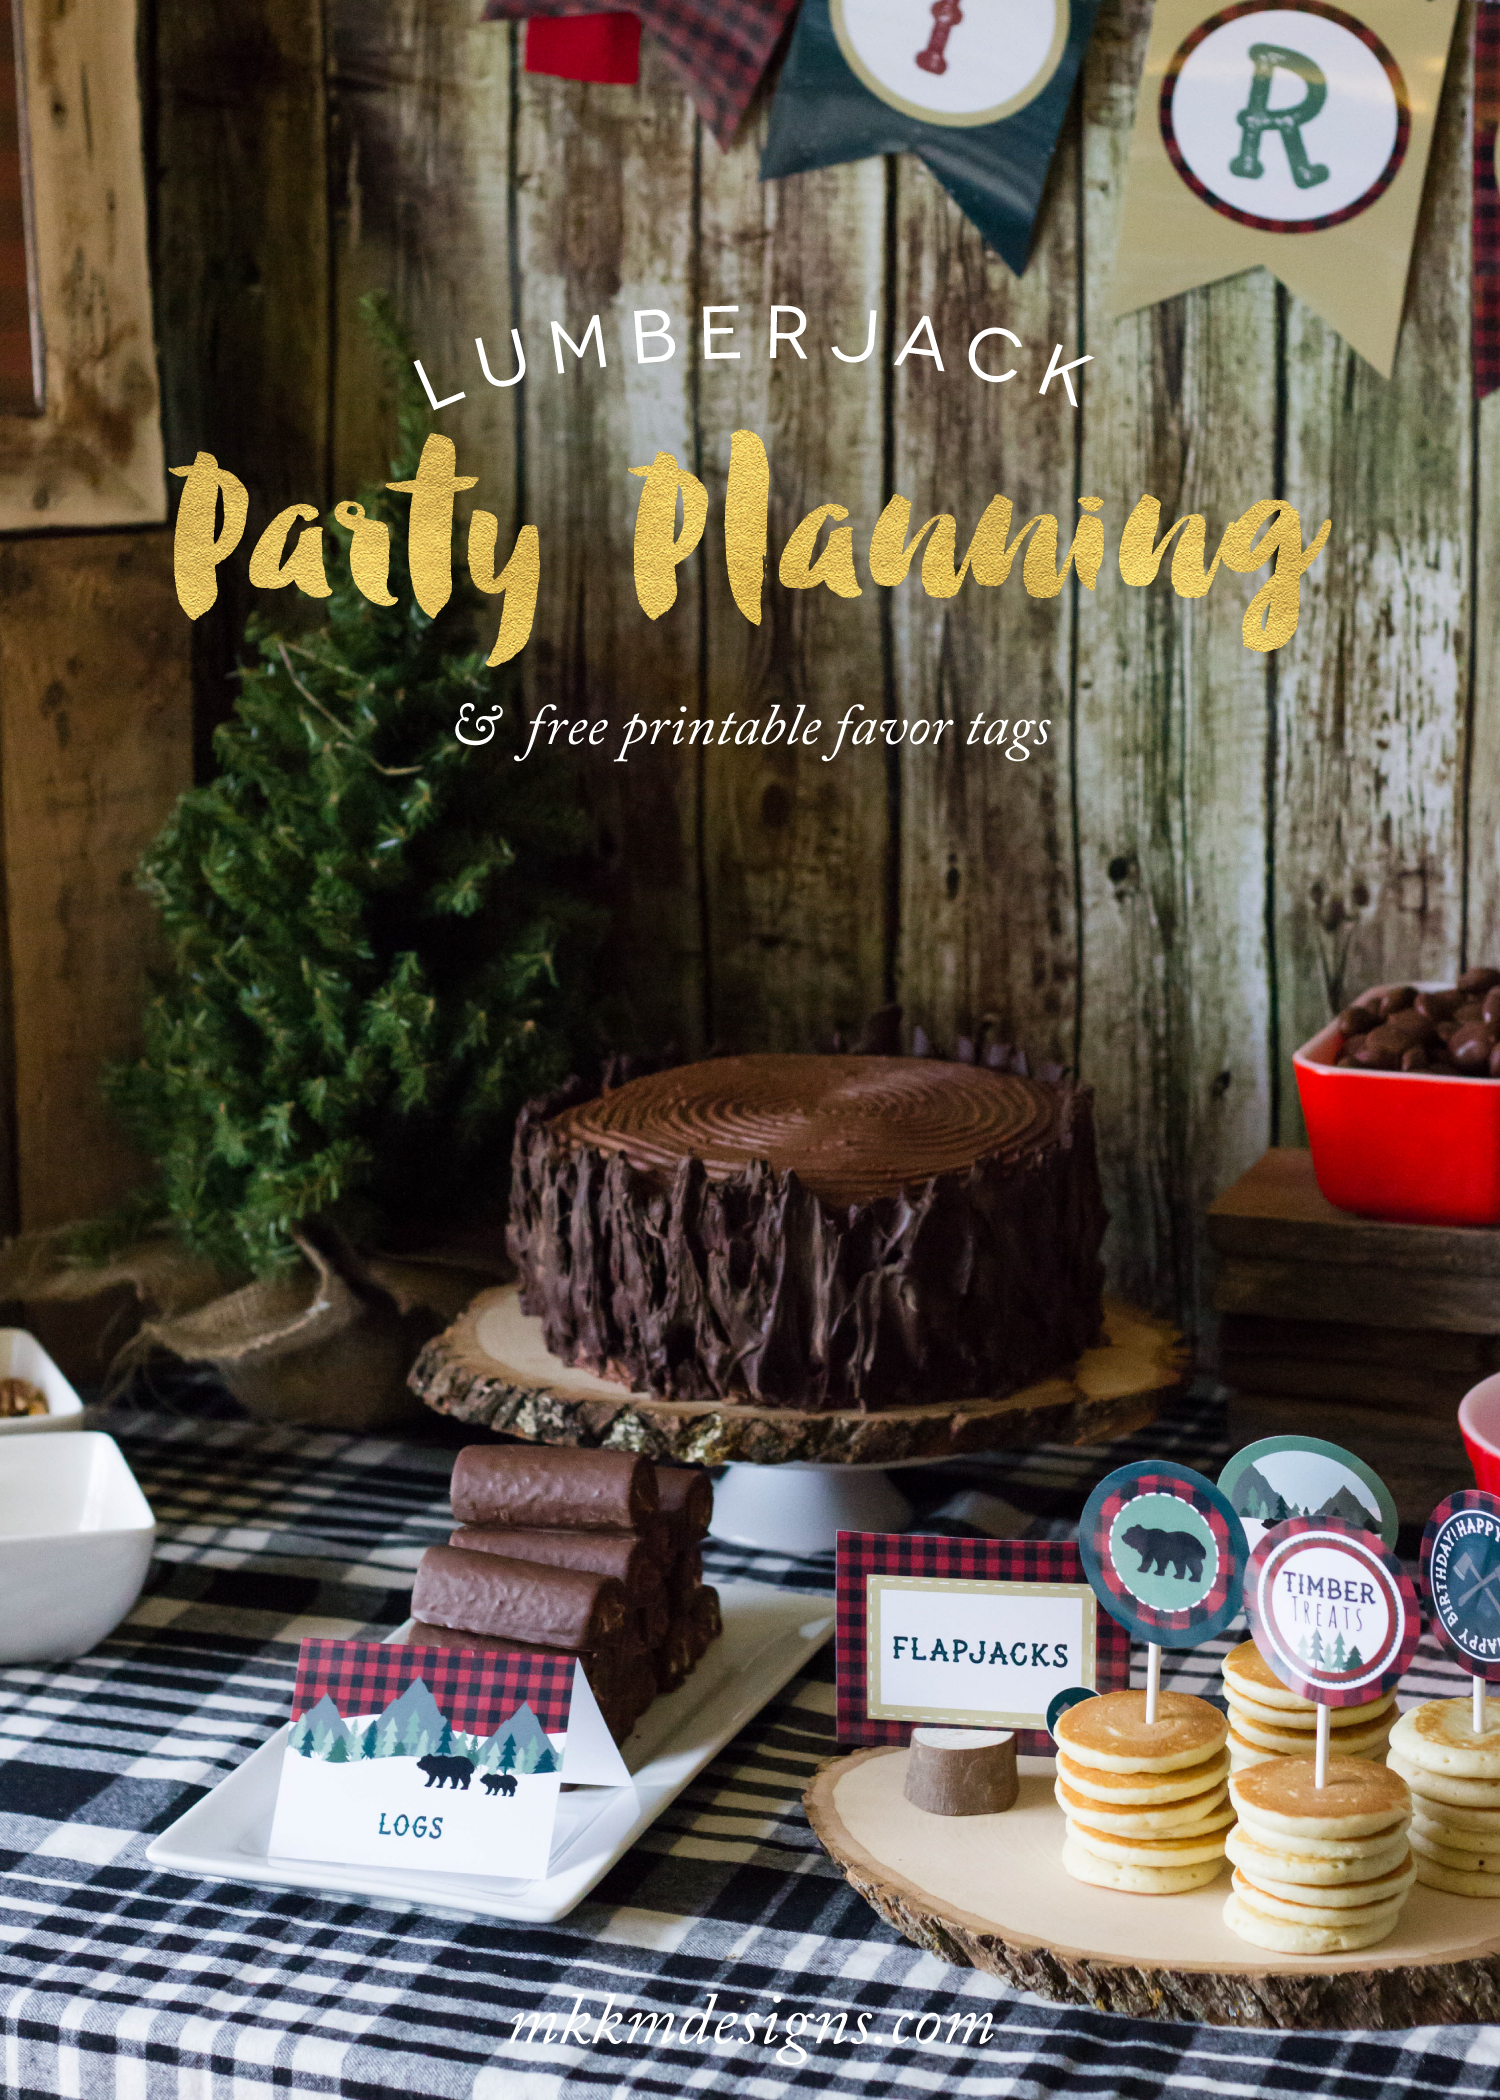 Lumberjack Party Ideas & Free Printable Favor Tags | MKKM Designs